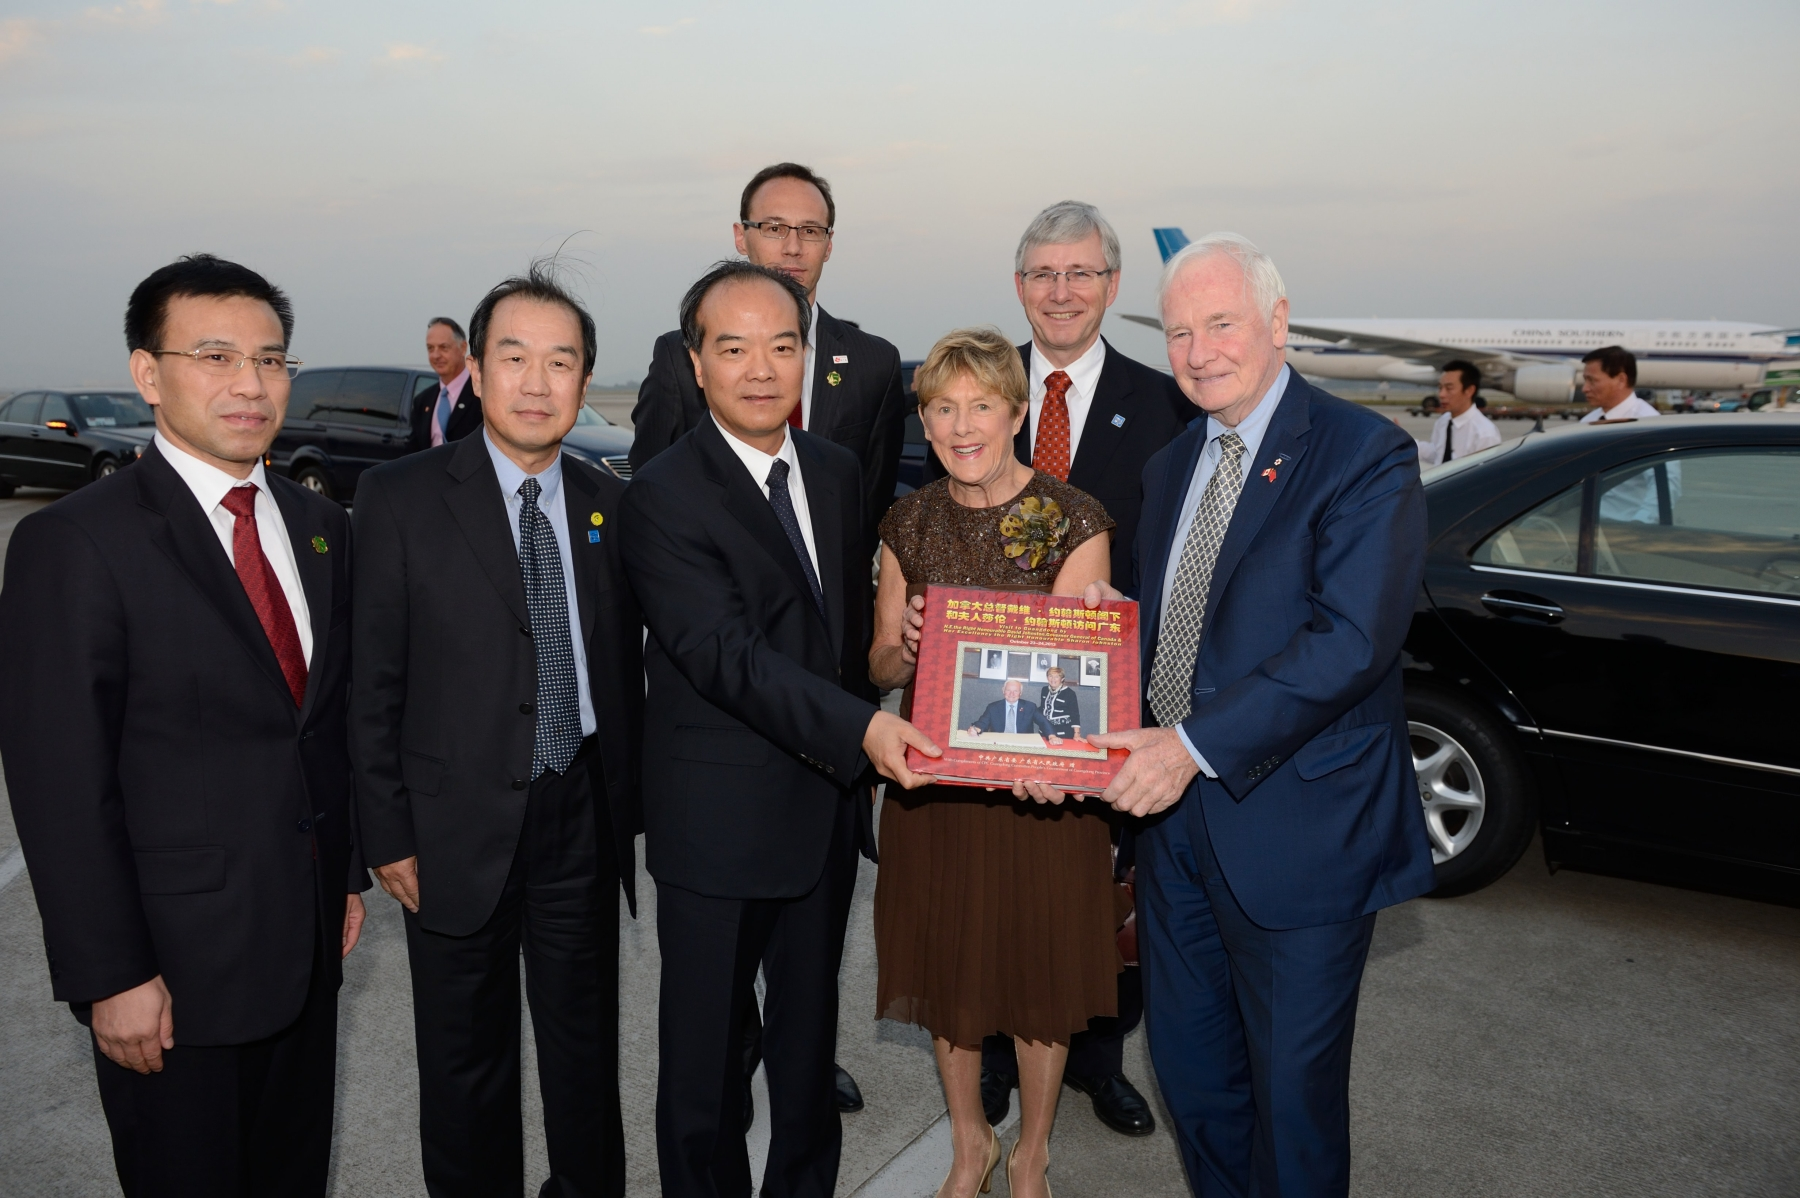 Before their departure from Baiyun International Airport, Their Excellencies were presented with a gift to commemorate their State visit to the People's Republic of China.